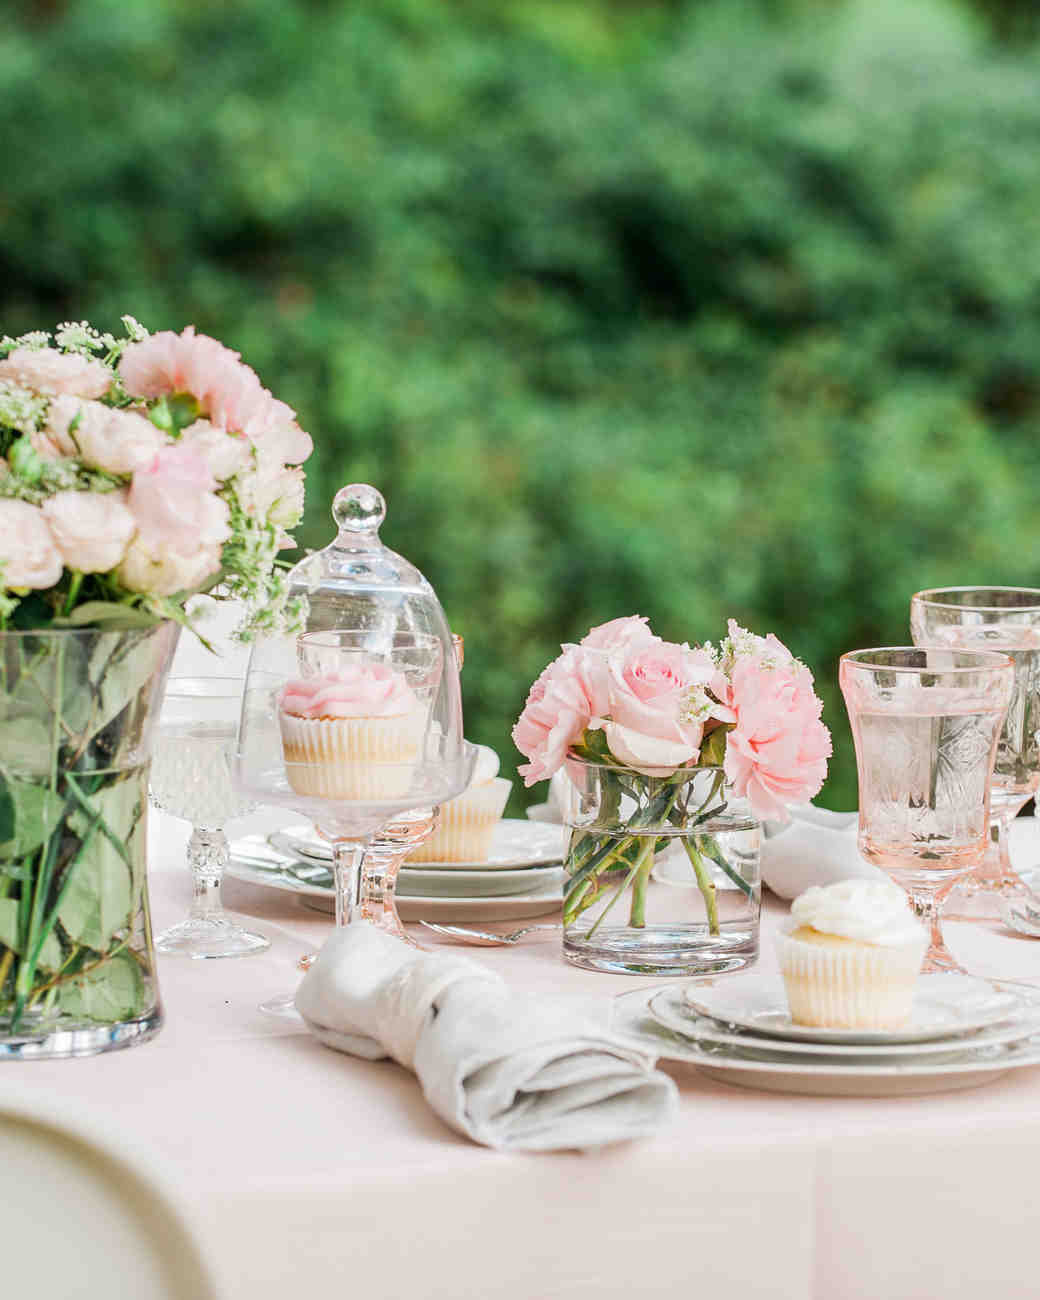 Pink Rose Centerpieces at a Spring Bridal Shower